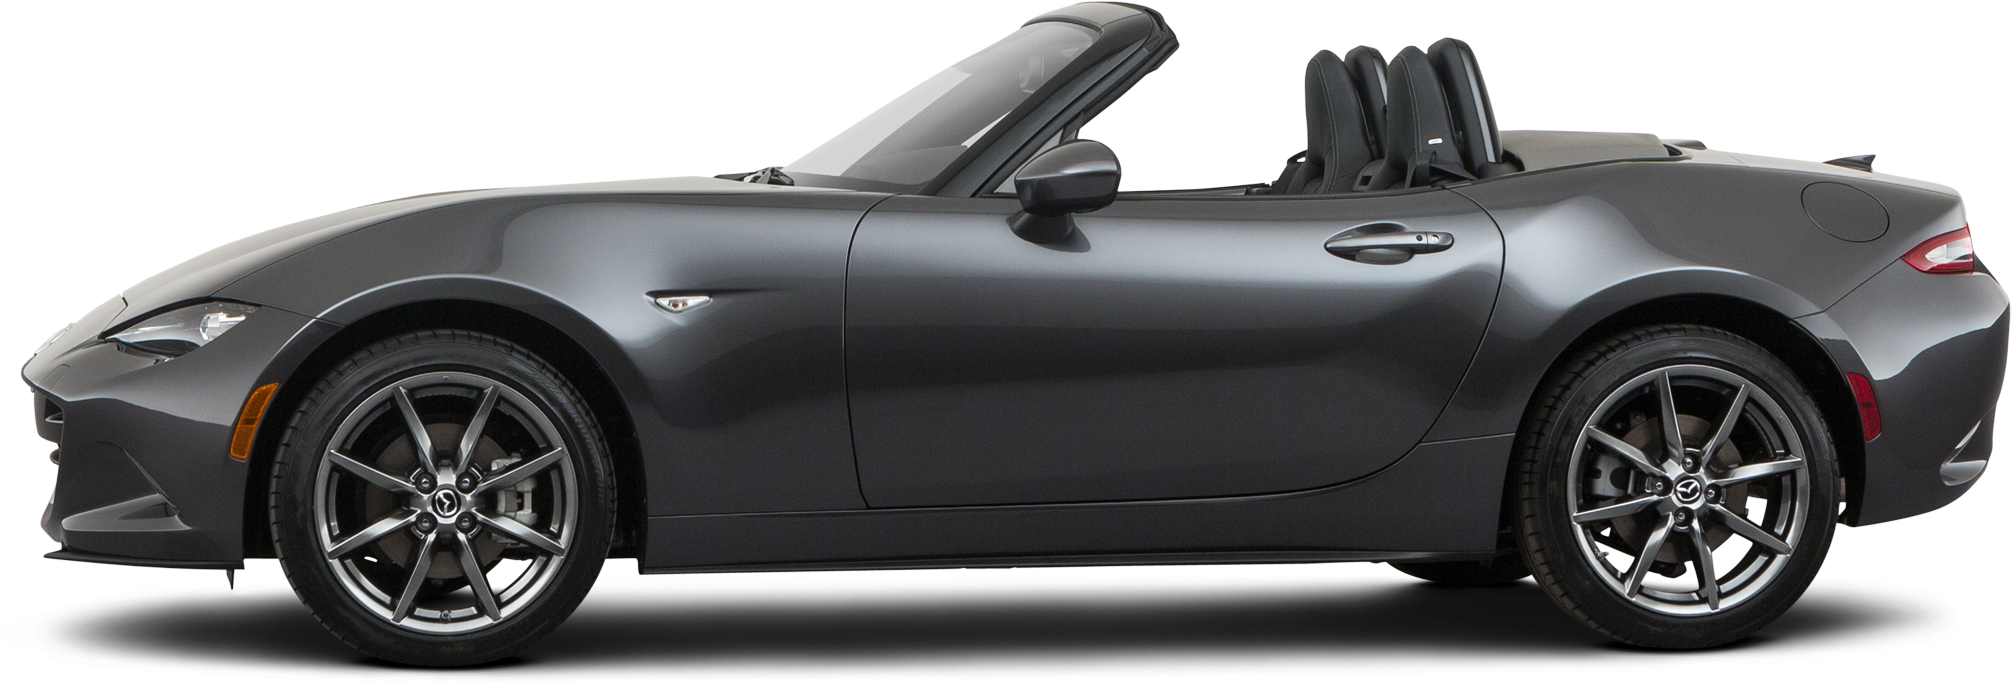 2020 Mazda Mazda MX-5 Miata Convertible Grand Touring